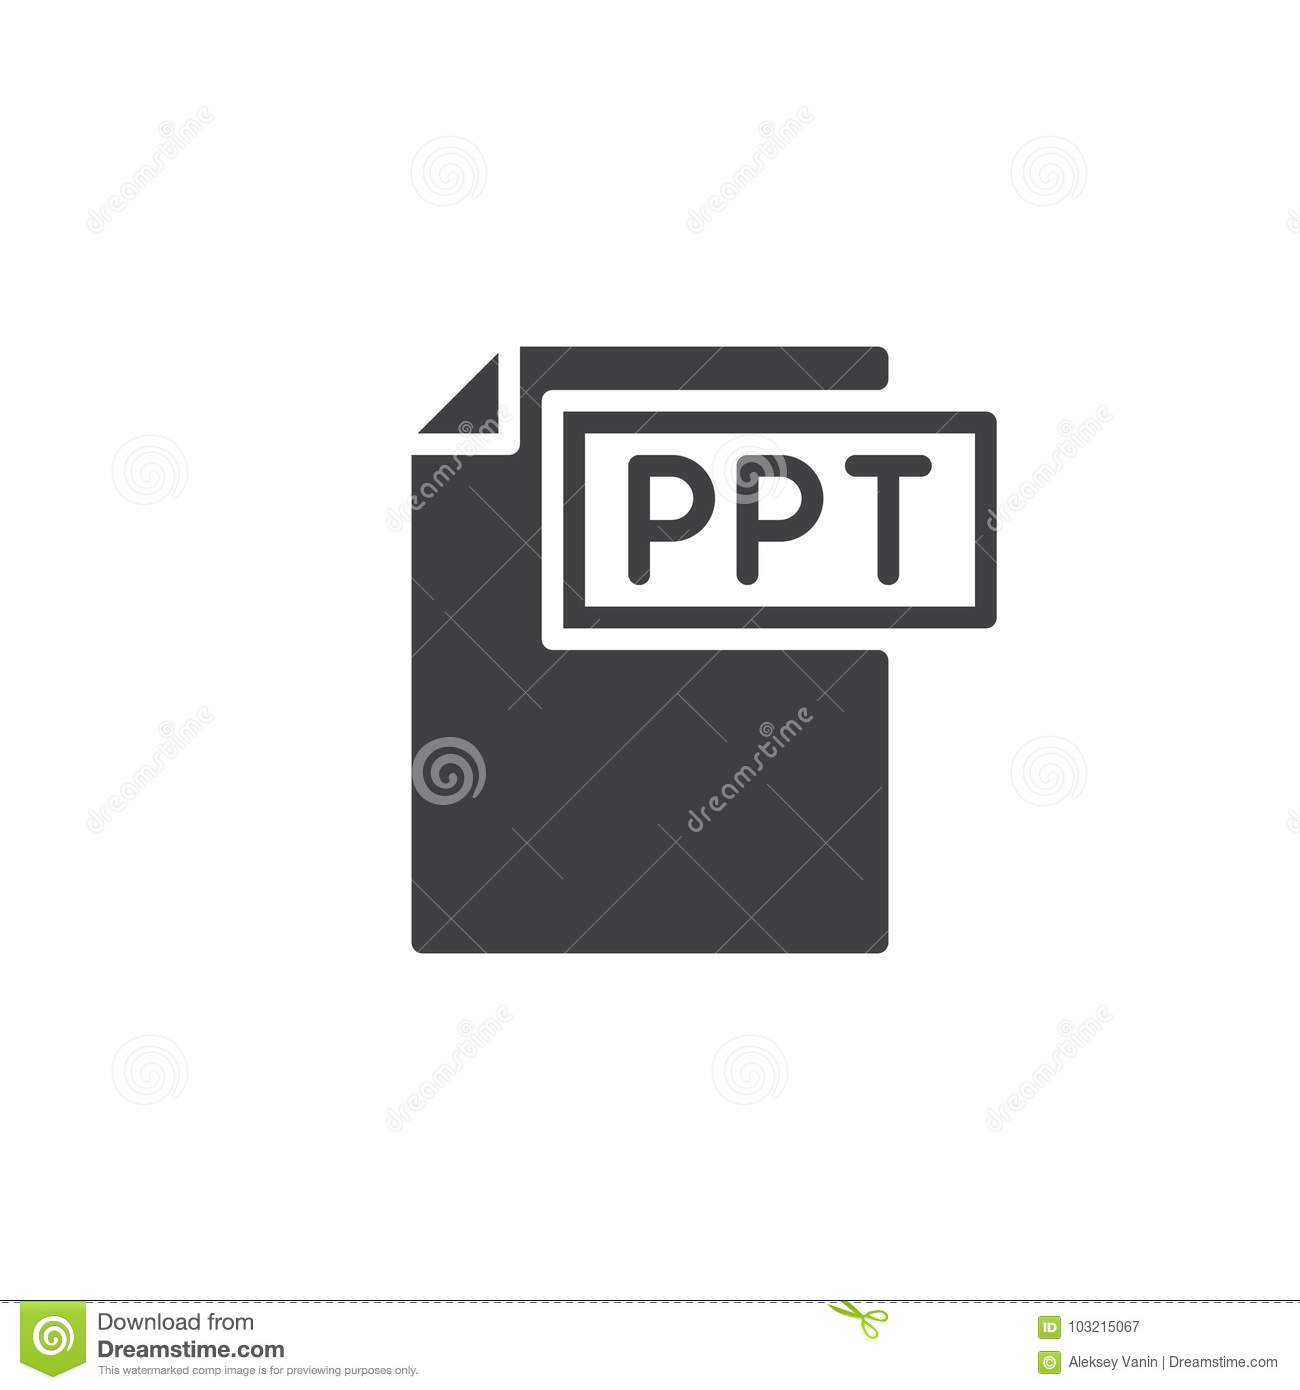 ppt format document icon vector stock vector illustration of type